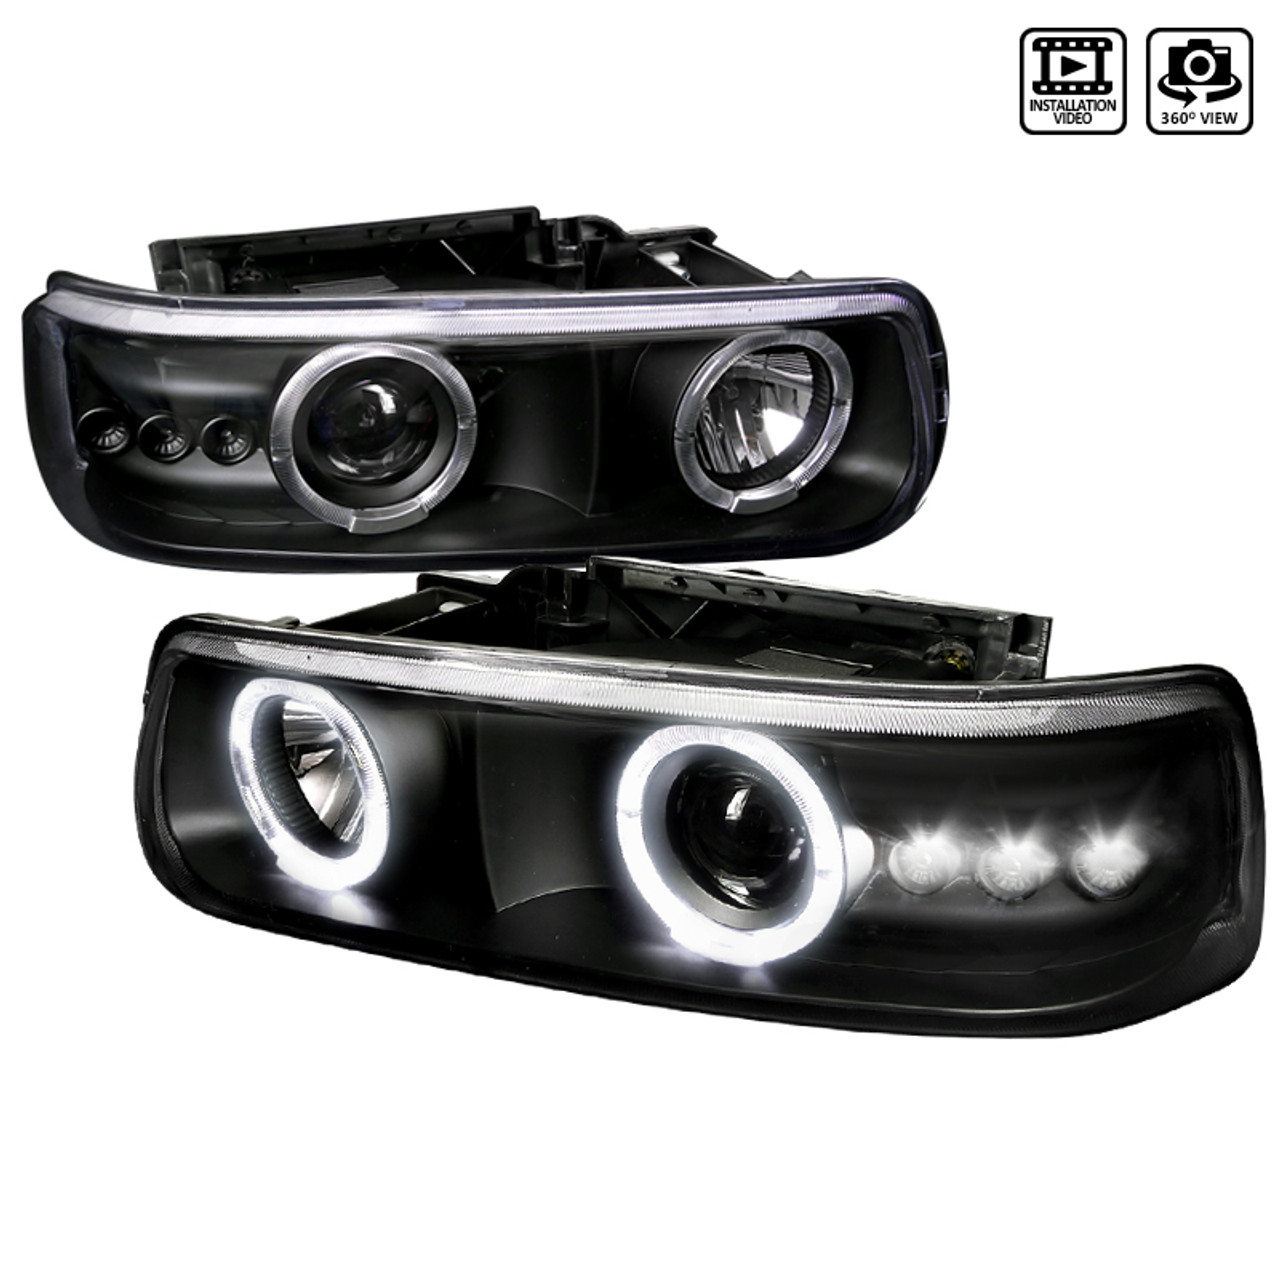 For 1999-2002 Chevy Silverado BLK Housing Headlights+Bumper Clear Reflector Lamp